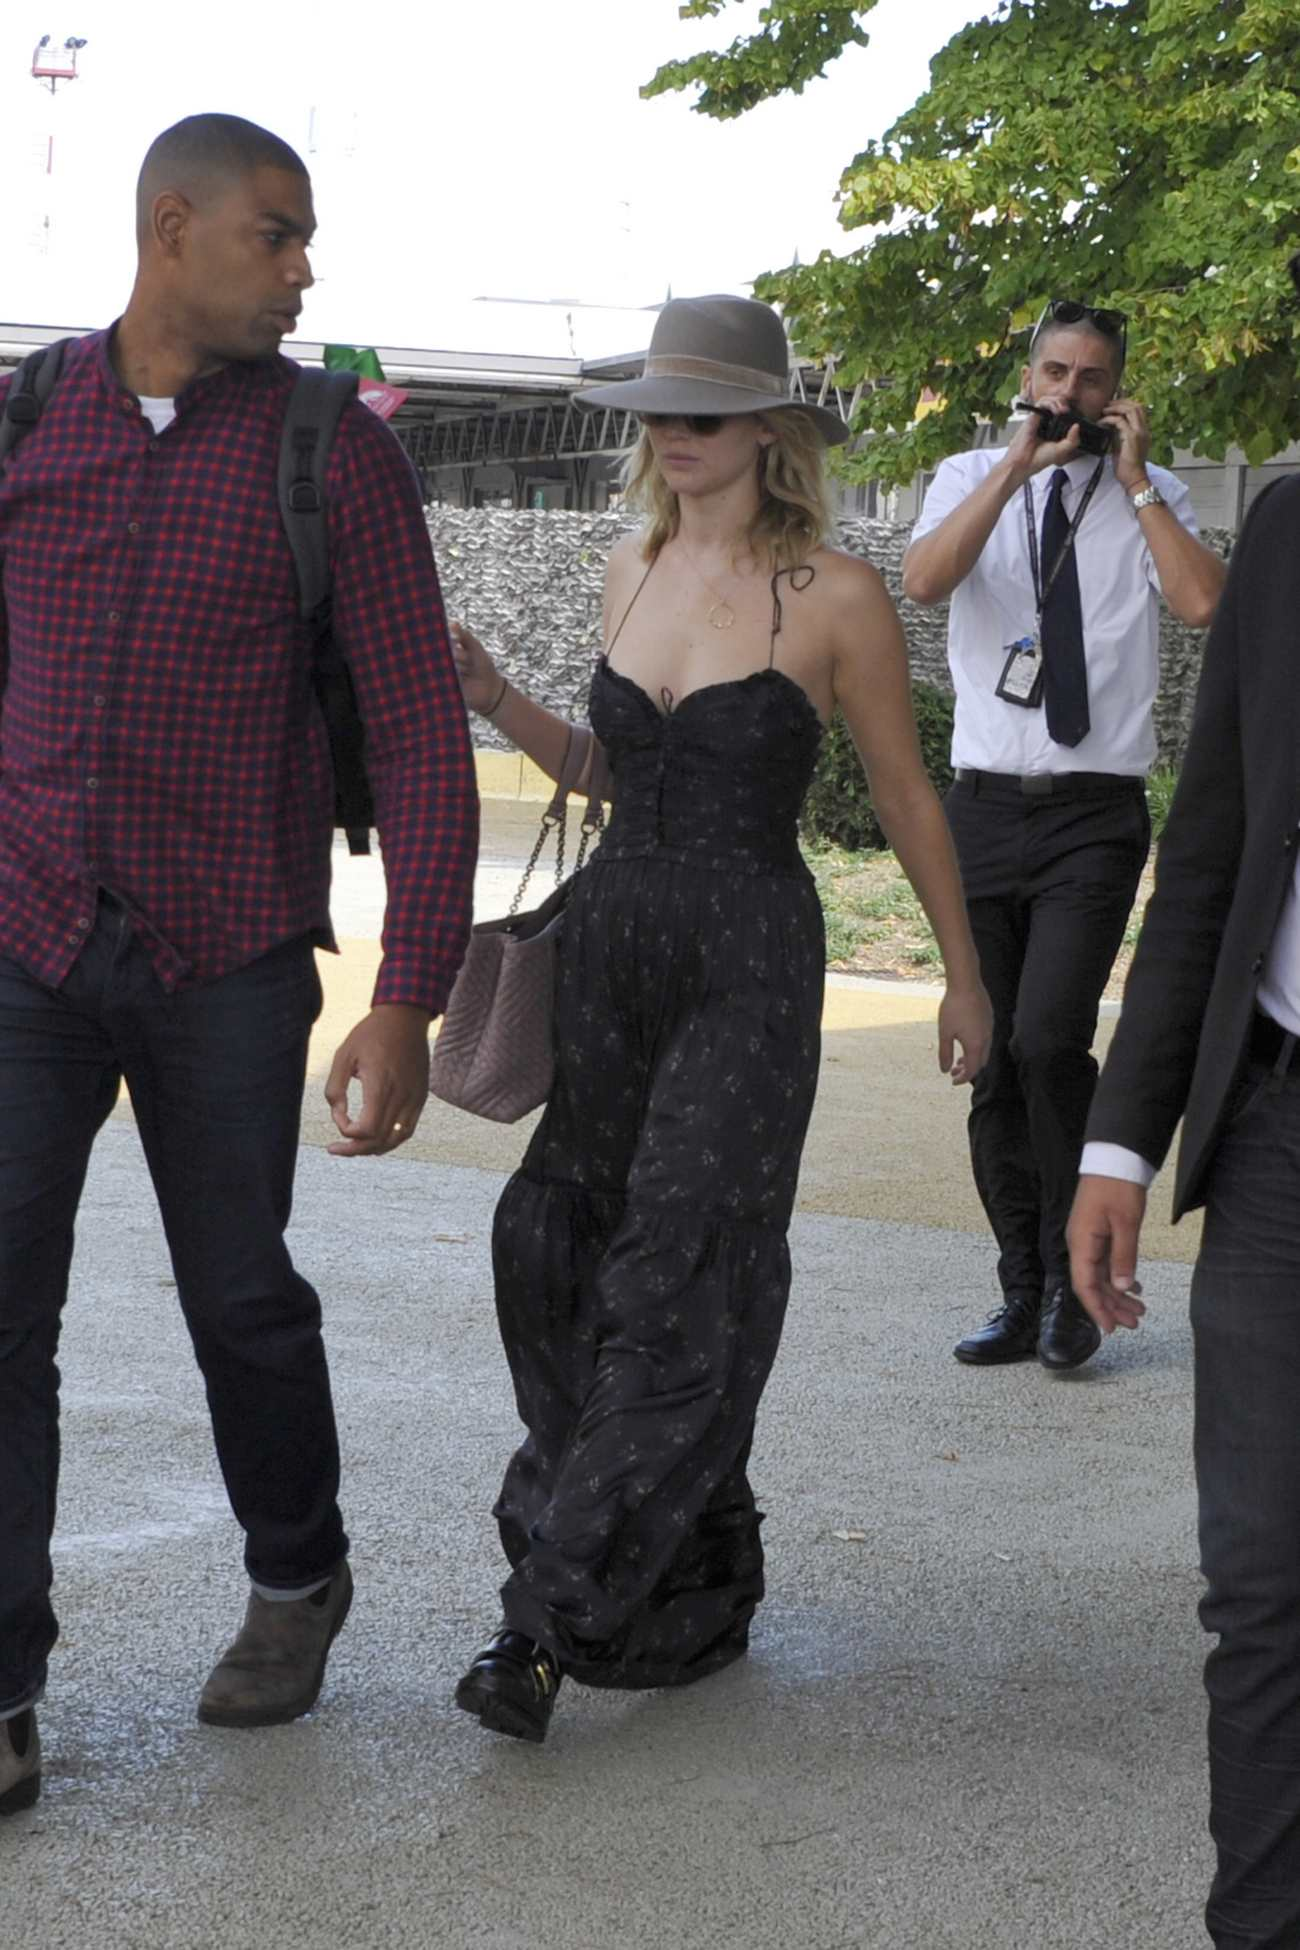 http://jenniferlawrencedaily.com/gallery/albums/userpics/10001/Arrives_at_Venice_Airport_for_the_74th_Venice_Festival_in_Italy_-_September_2-07.jpg